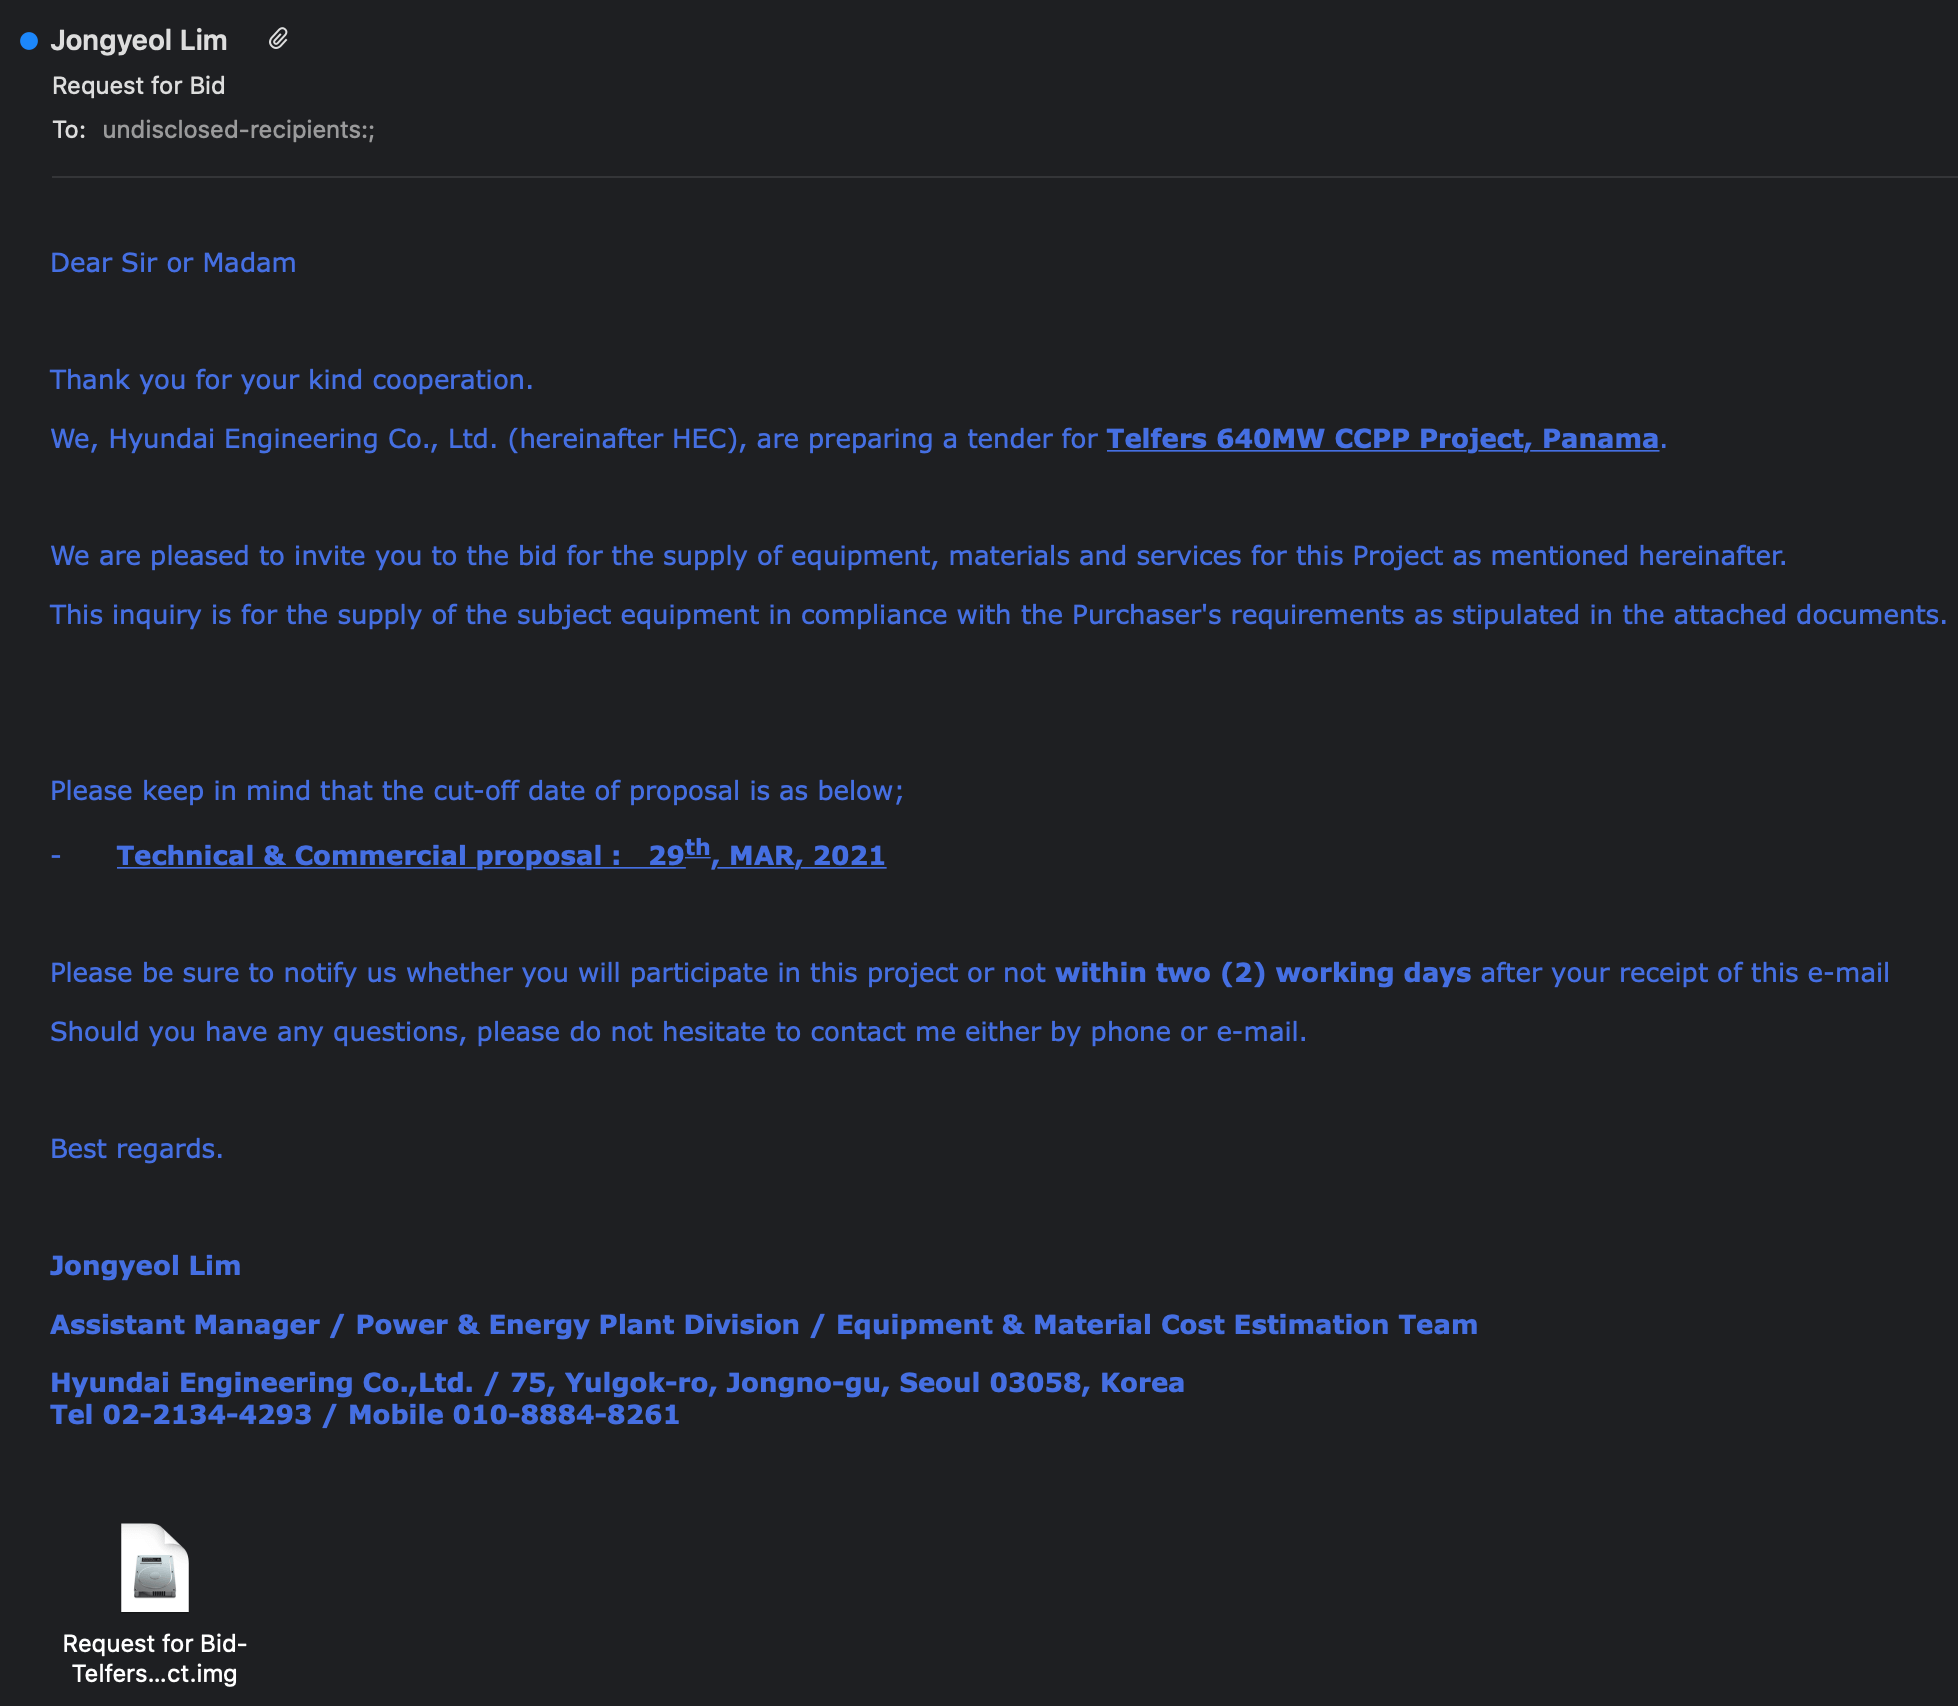 spear-phishing campaign example heimdal security